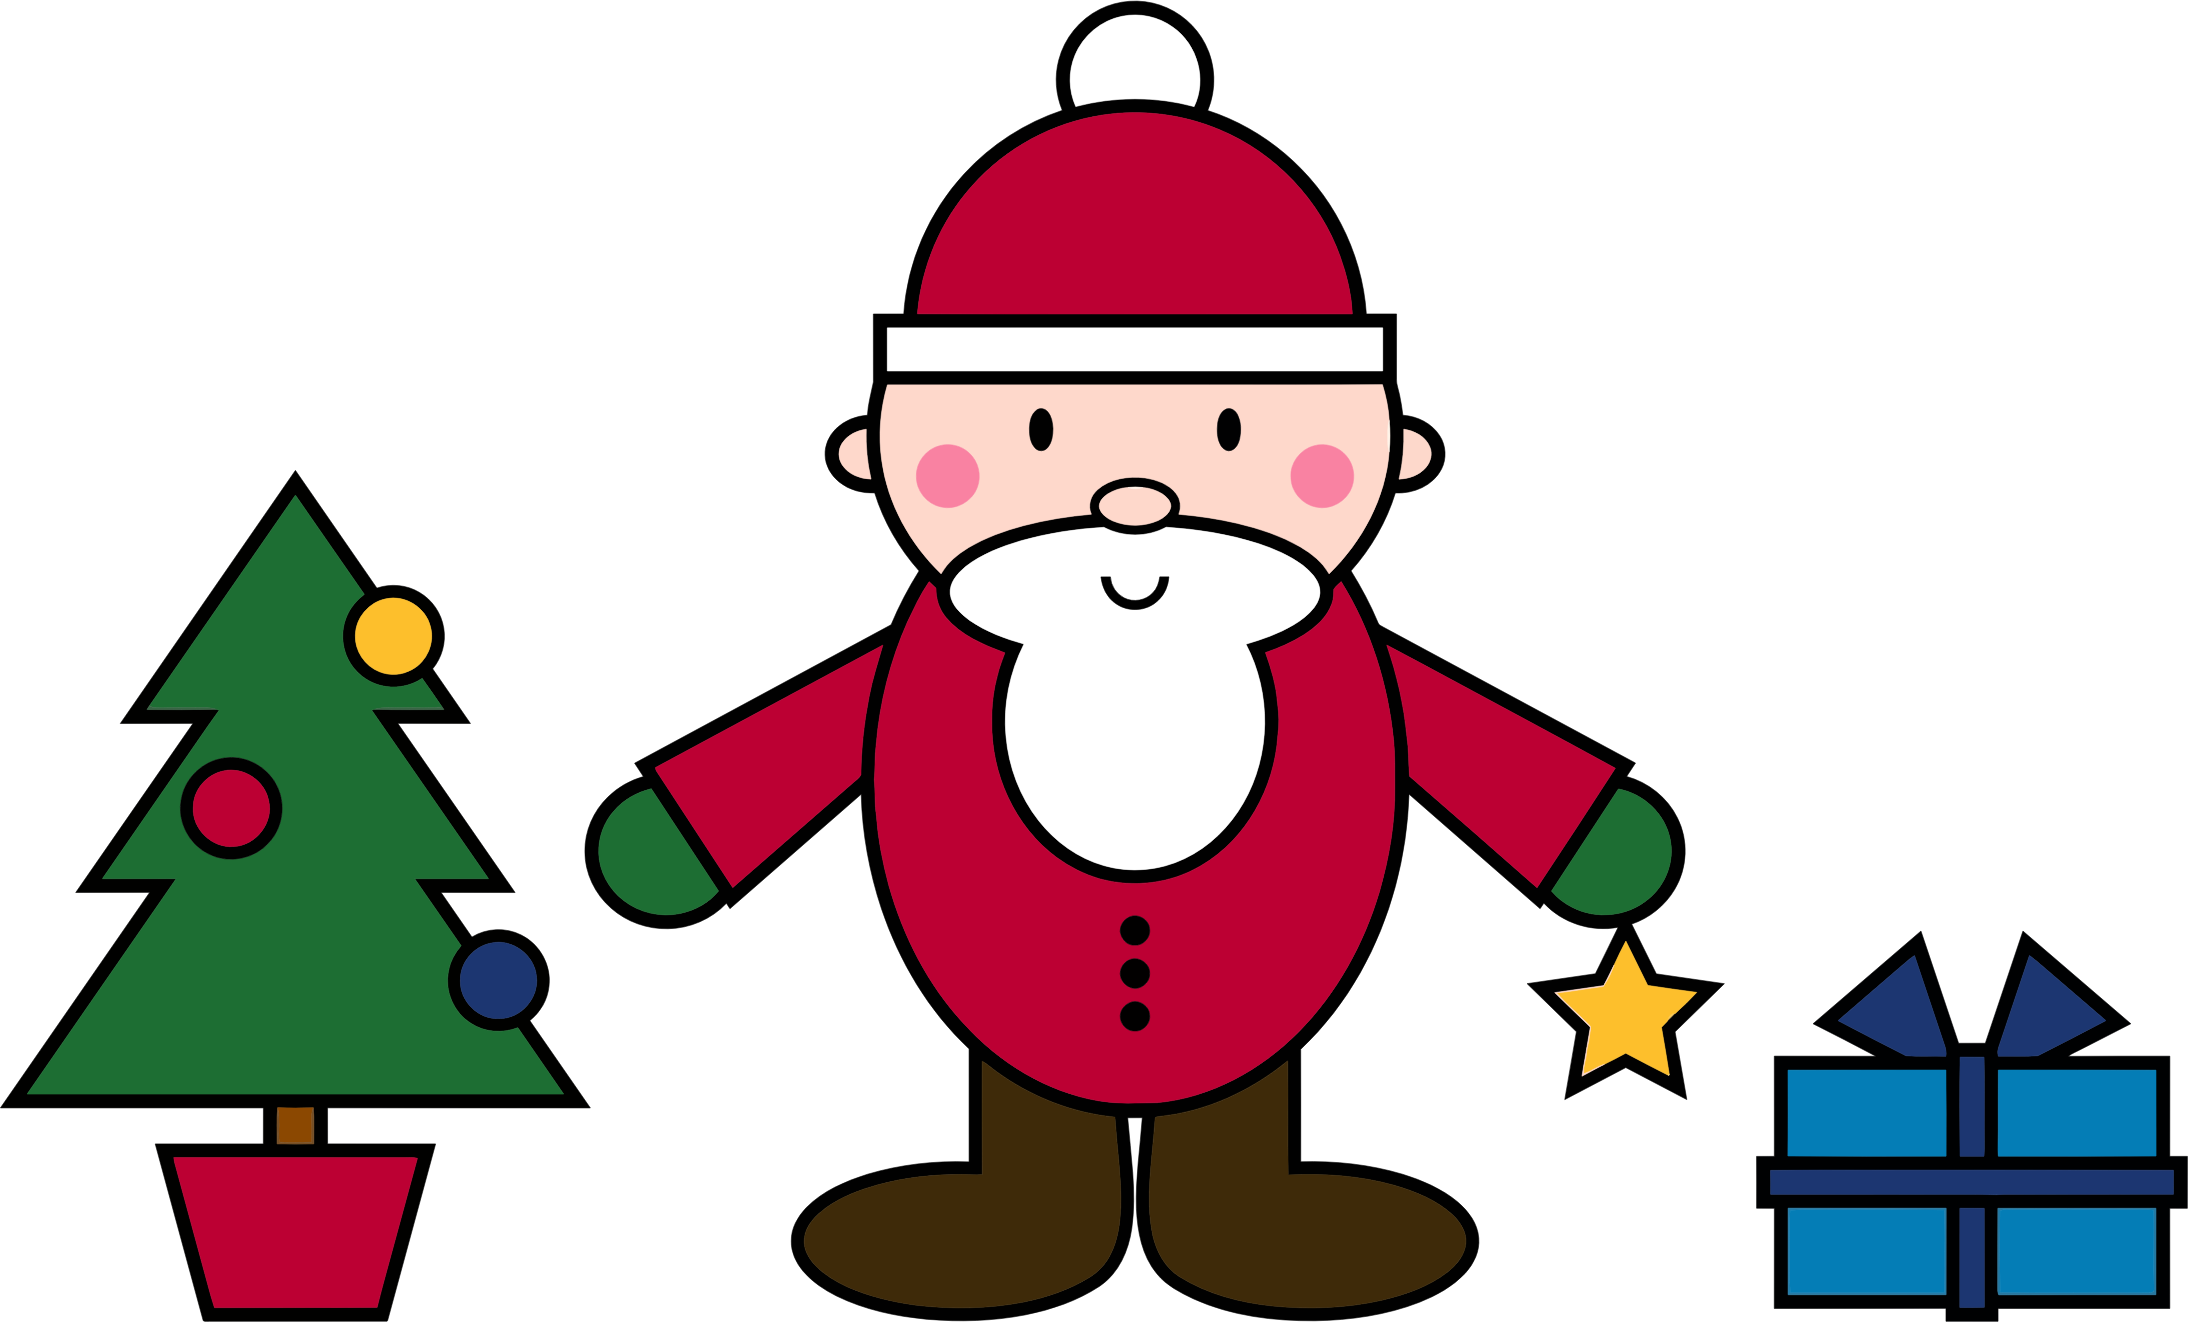 Christmas scene clipart clipart library stock Clipart - Simple Santa Claus Christmas Scene clipart library stock